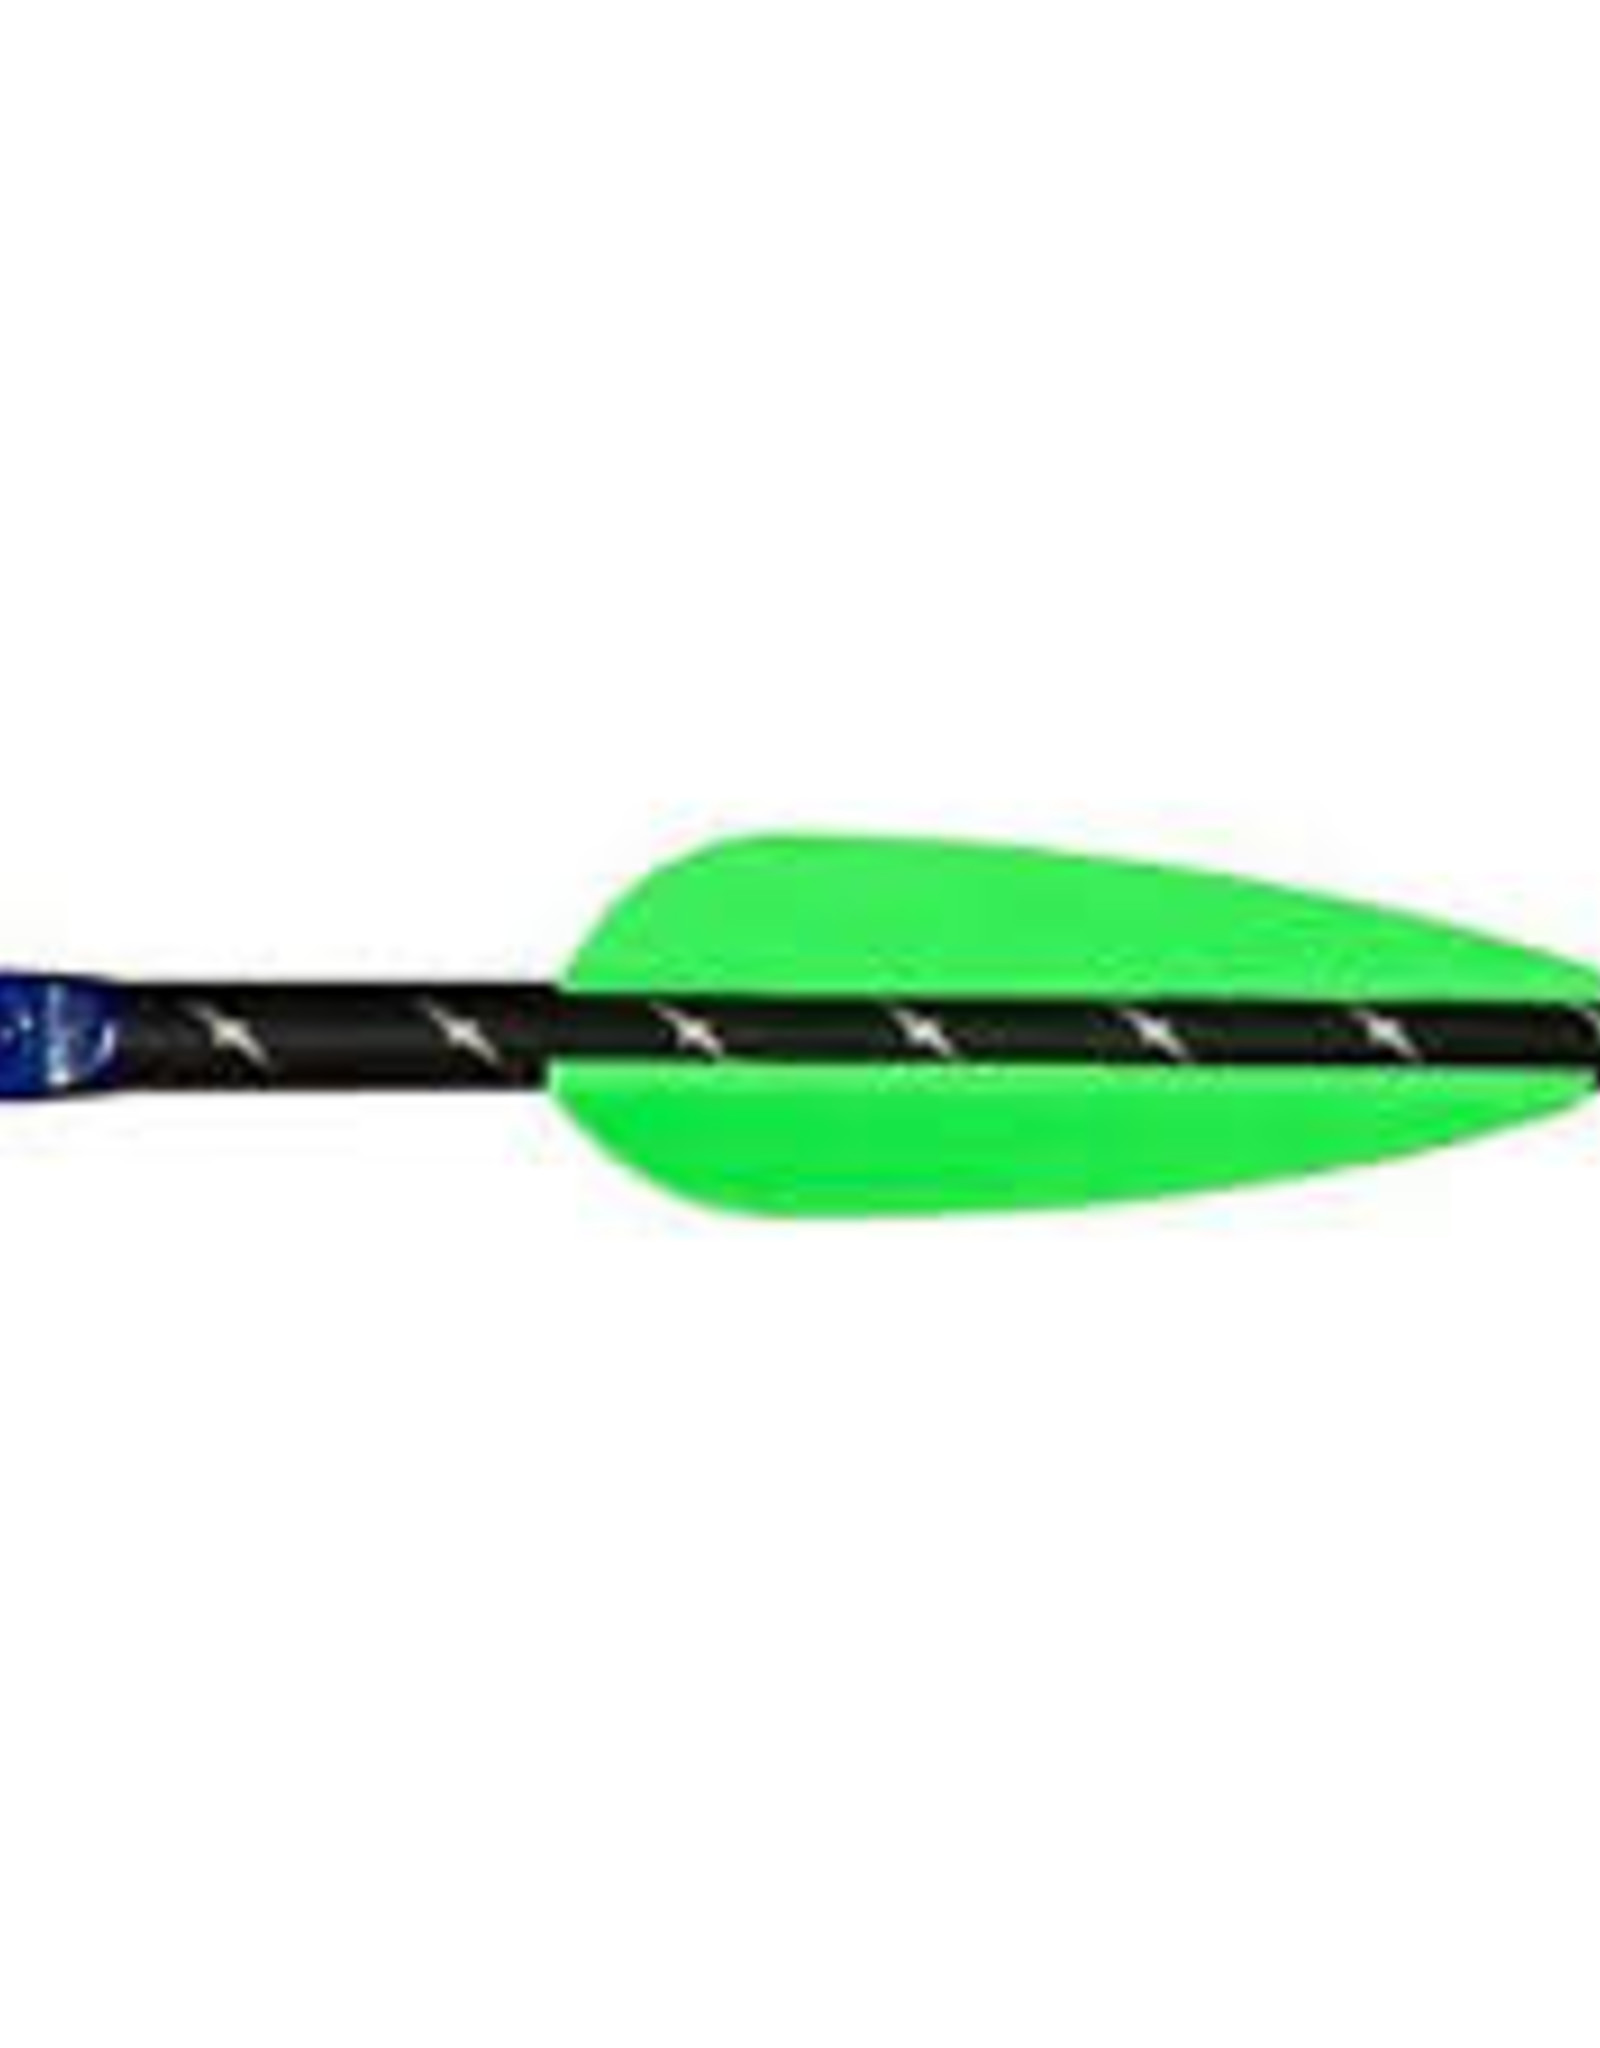 AAE USA AAE ELITE PLASTICFLETCH  #40 GREEN